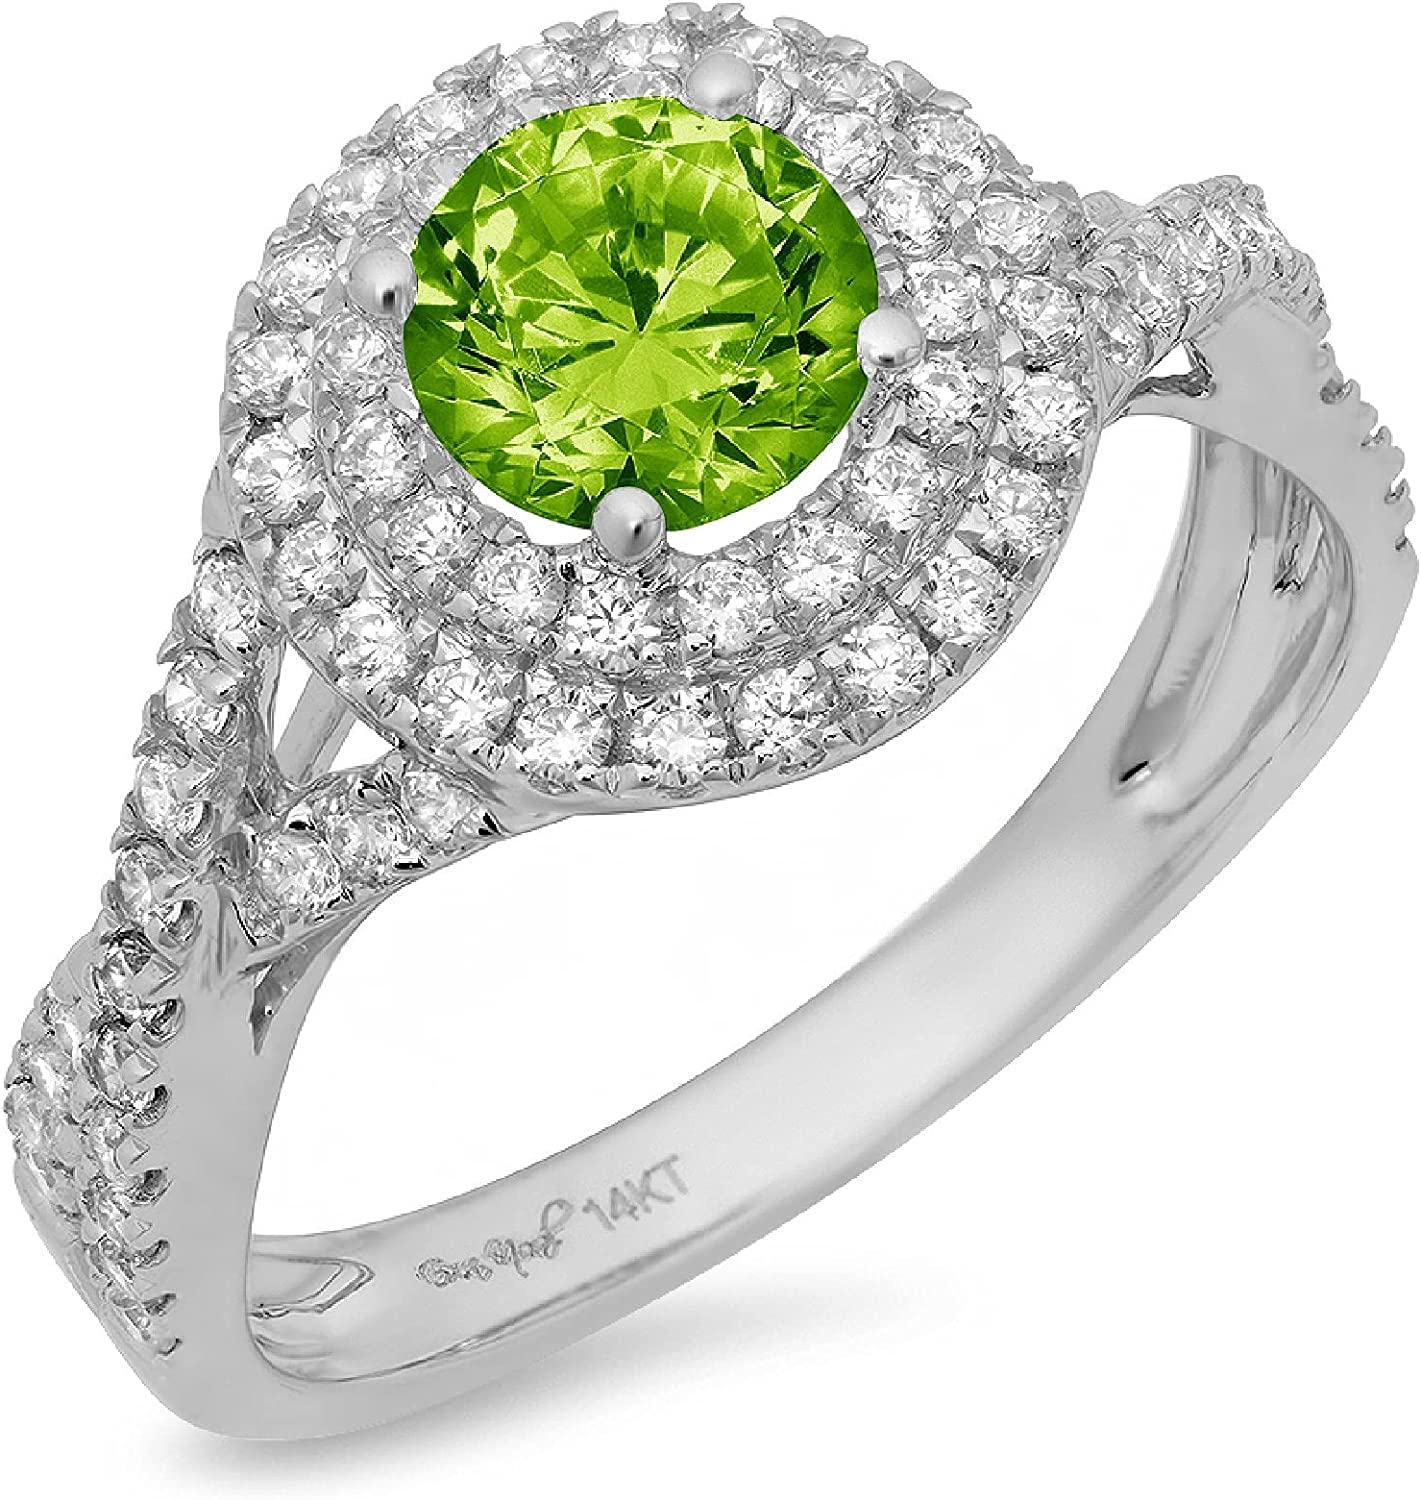 Clara Pucci 1.5 ct Round Cut Solitaire double halo Stunning Genuine Flawless Natural Green Peridot Gem Designer Modern Statement Accent Ring Solid 18K White Gold